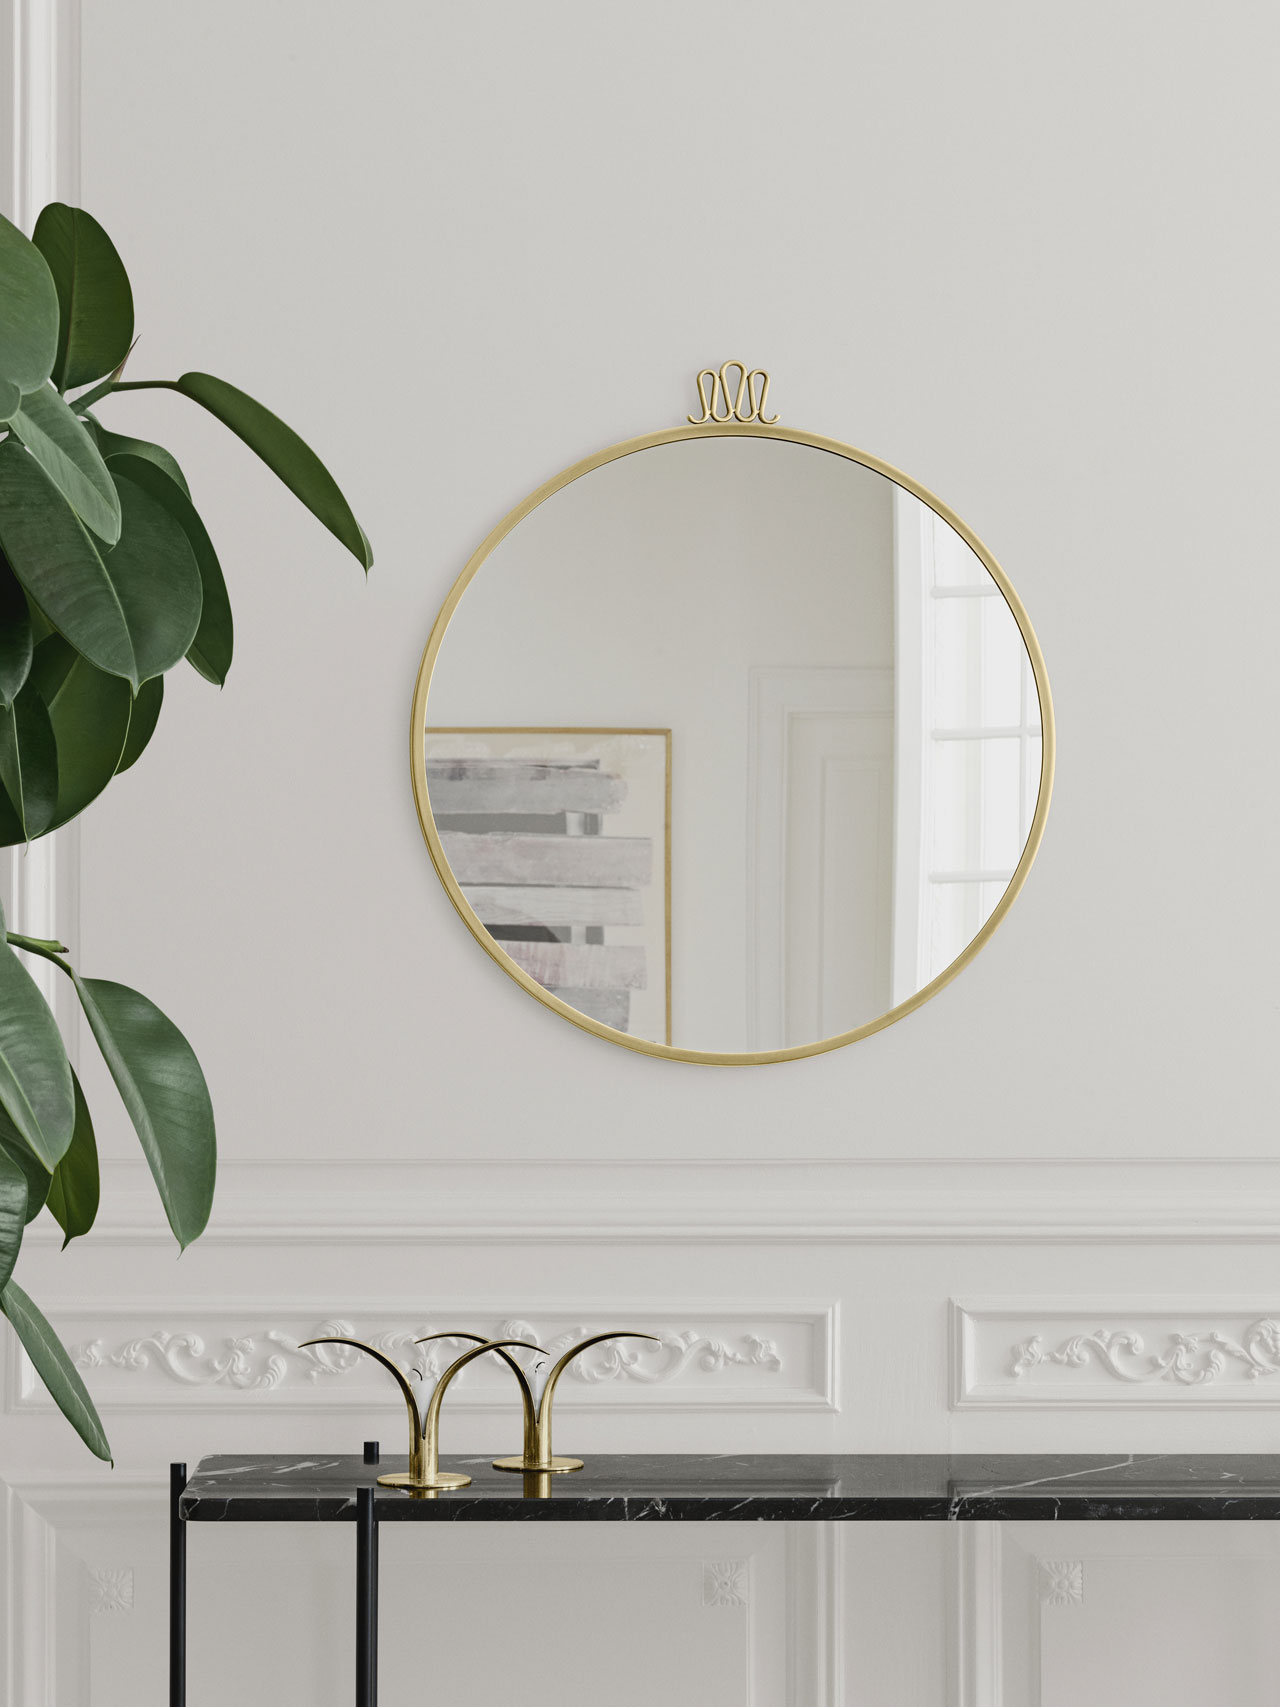 One of Gio Ponti's signature designs is the Randaccio mirror from 1925. ''Designed for his own home on Via Randaccio in Milano, his very first architectural project, the Randaccio mirror decorated the walls in his bedroom on the 3rd floor together with other furniture designed especially for the apartment.''Since 2015 the mirror is reproduced by Gubi.